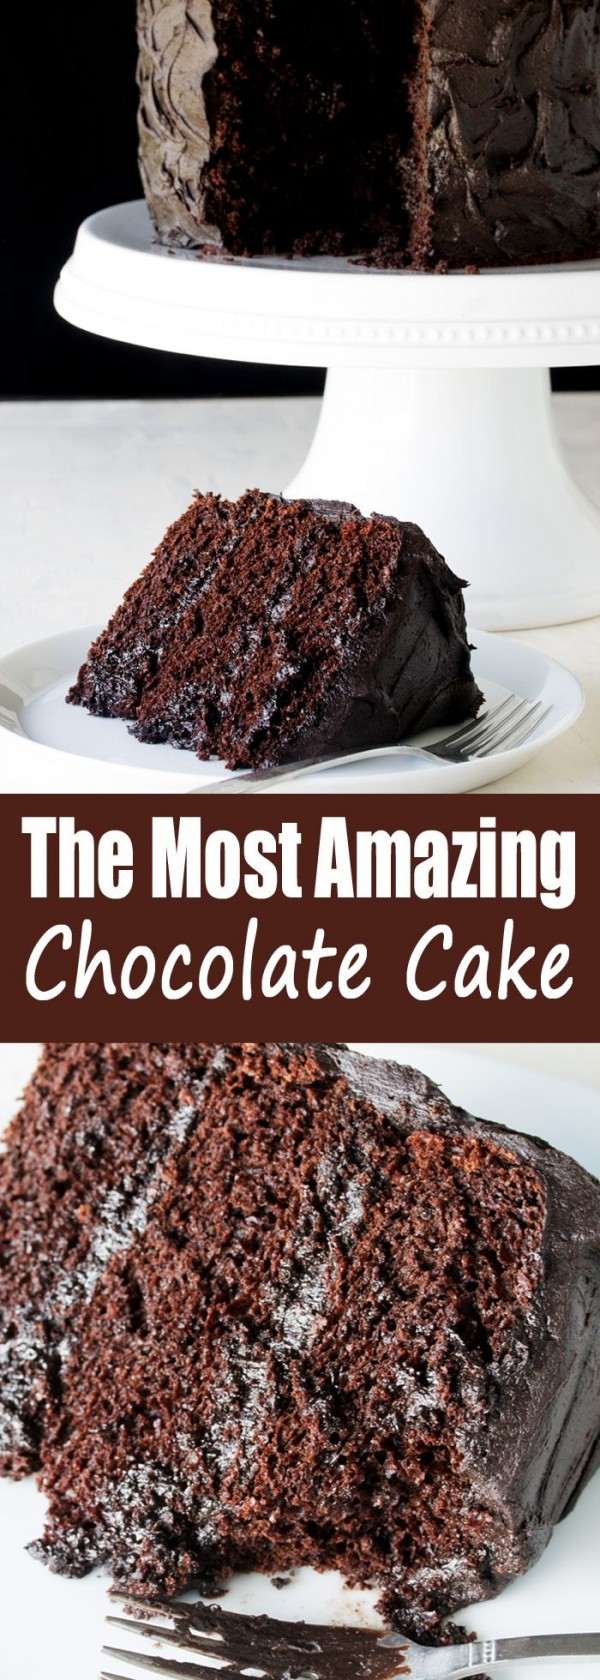 Get the recipe ♥ Chocolate Cake #besttoeat @recipes_to_go